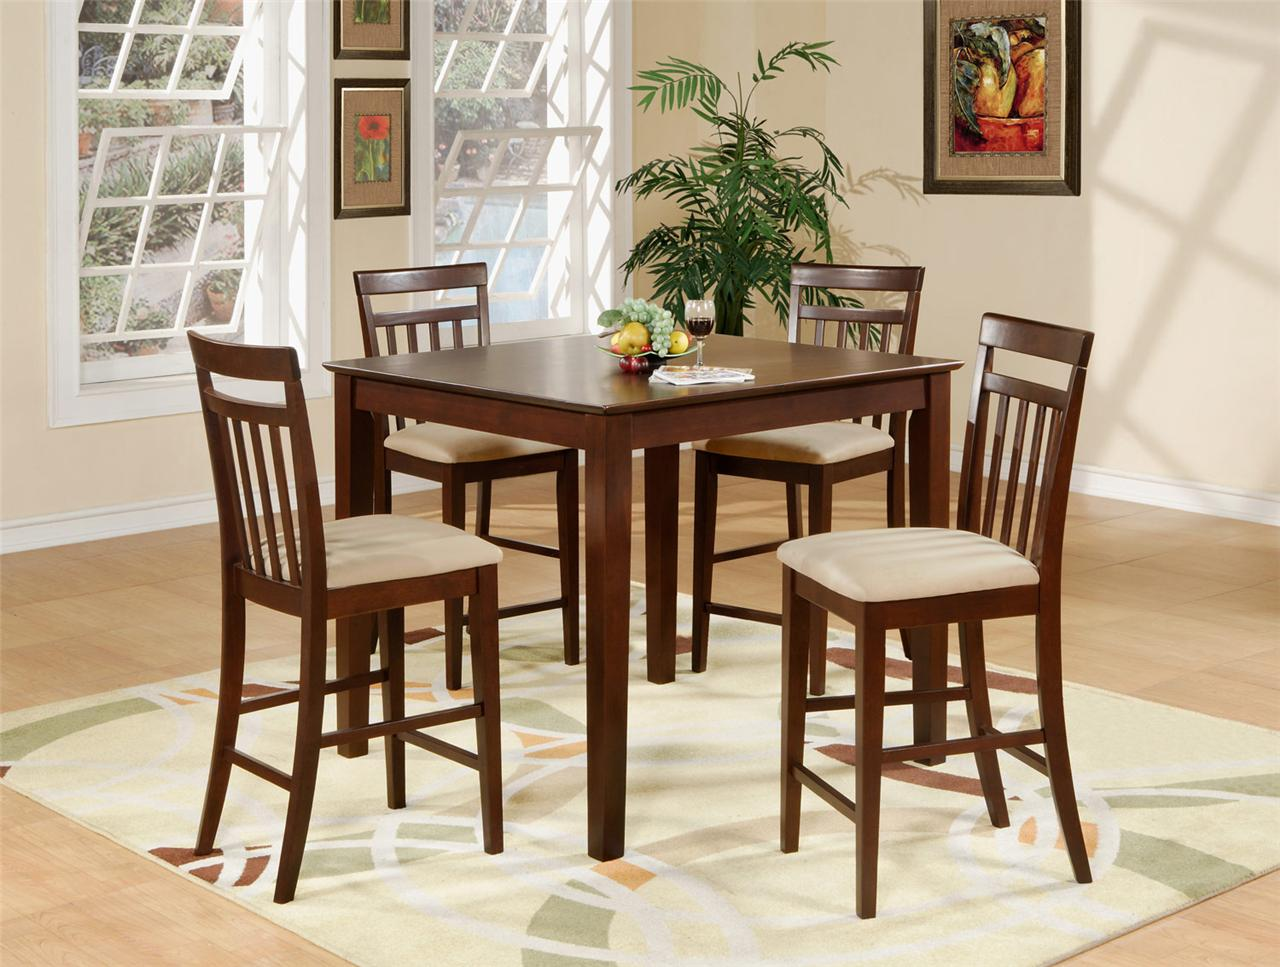 tall kitchen table and chairs folding lawn 5pc square pub counter height dining 4 padded